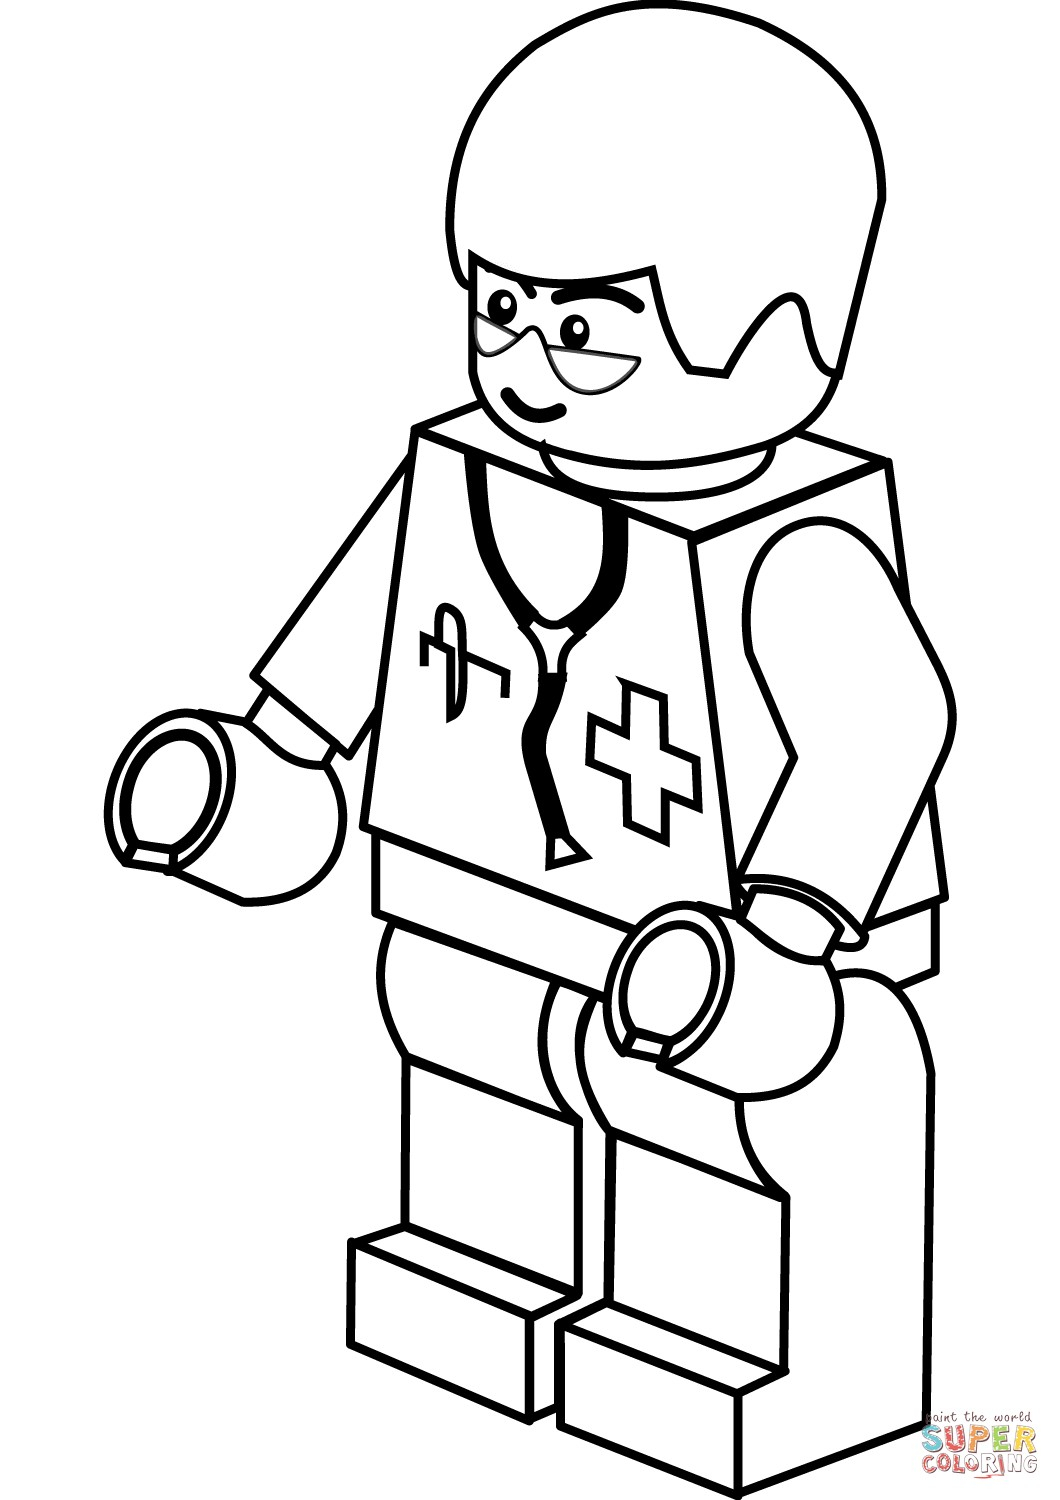 Doctor Who Coloring Page Dr Who Coloring Pages Printable Of Doctor At 419shco